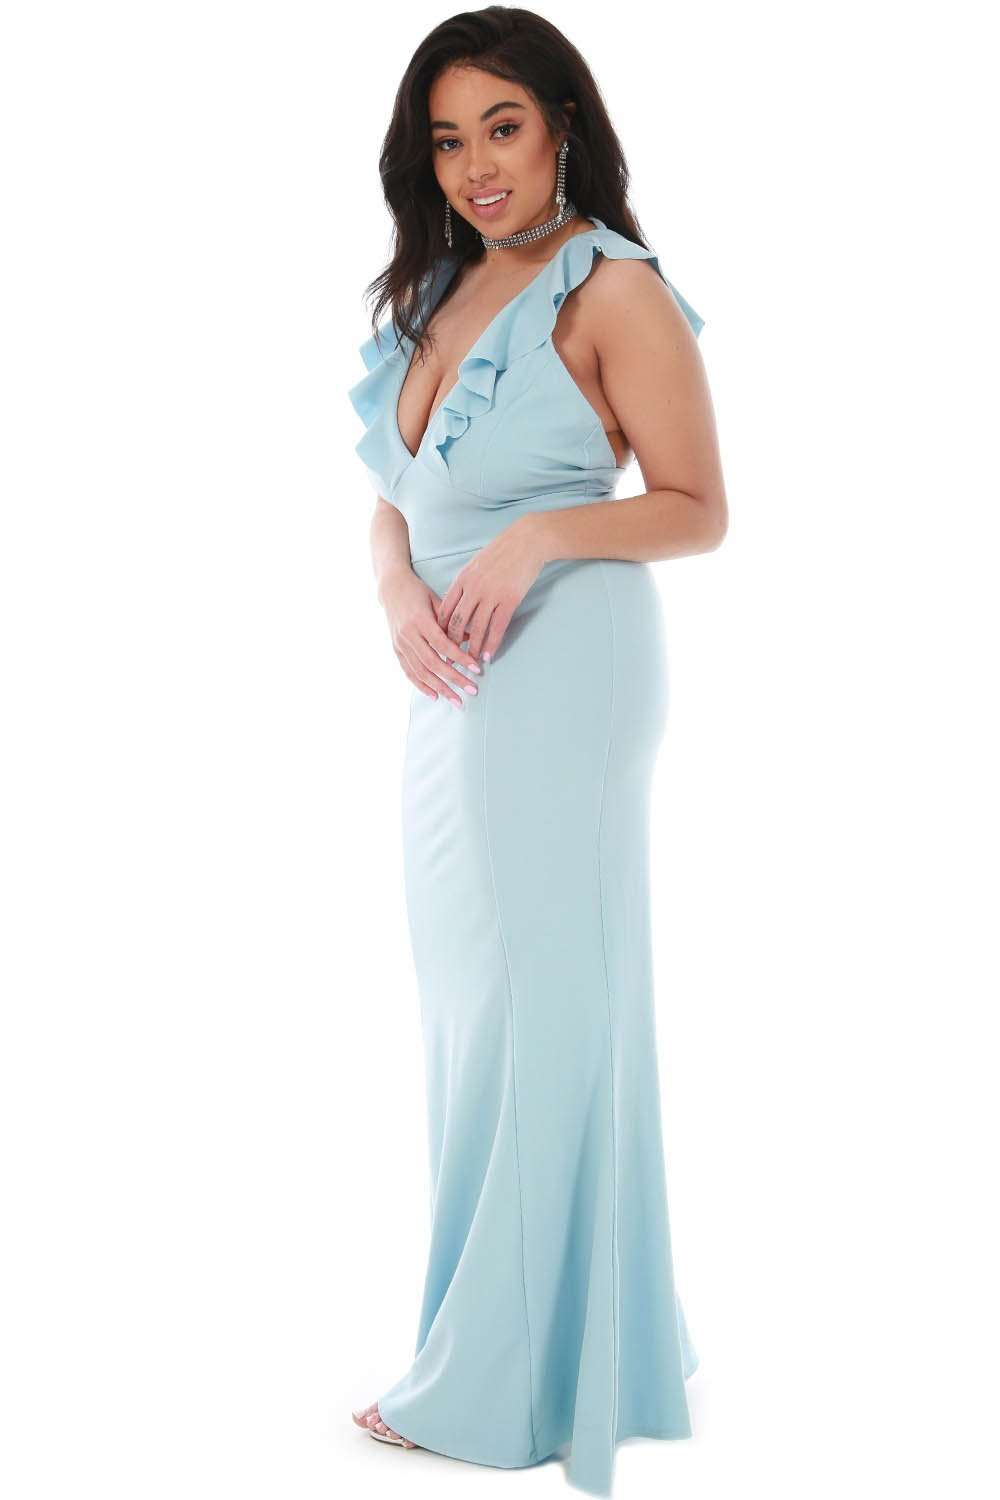 Plus Size Plunge Neck Frilly Fishtail Maxi Dress - bejealous-com